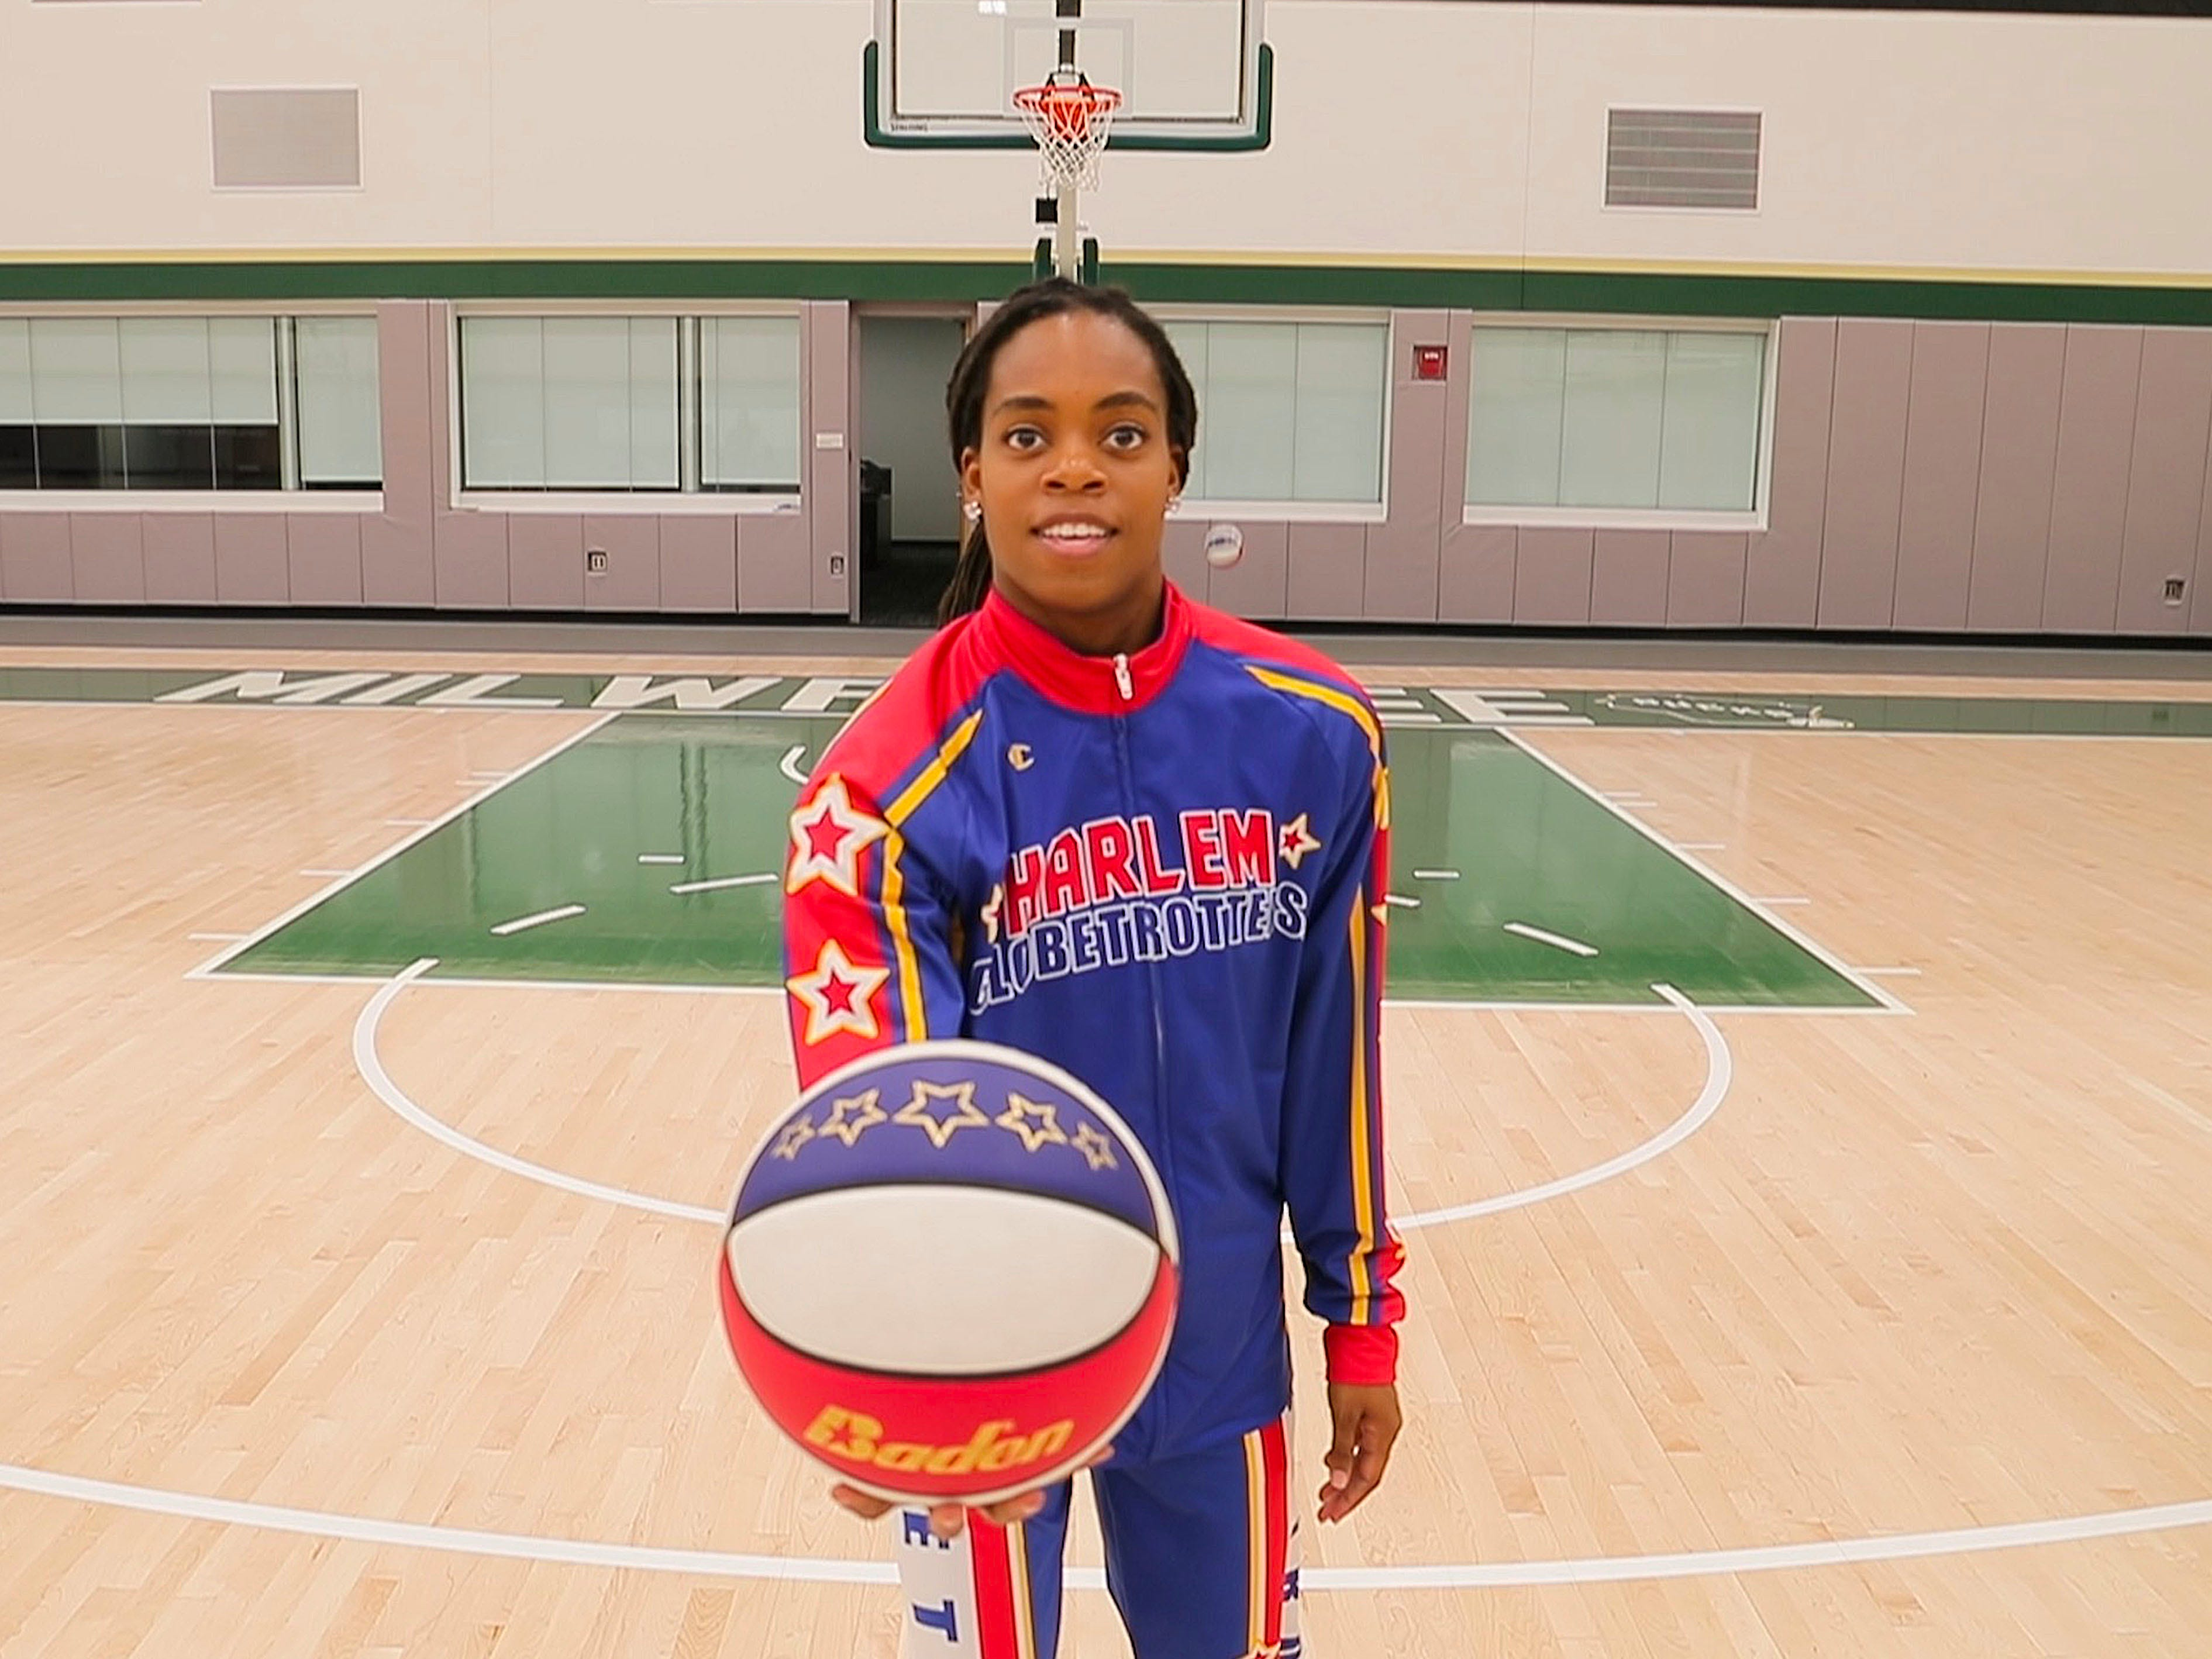 The Harlem Globetrotters' Lili Champ Thompson prepares to shoot a behind-the-back shot, which she made. The Globetrotters were in town promoting their annual Dec. 31 game at Fiserv Forum.